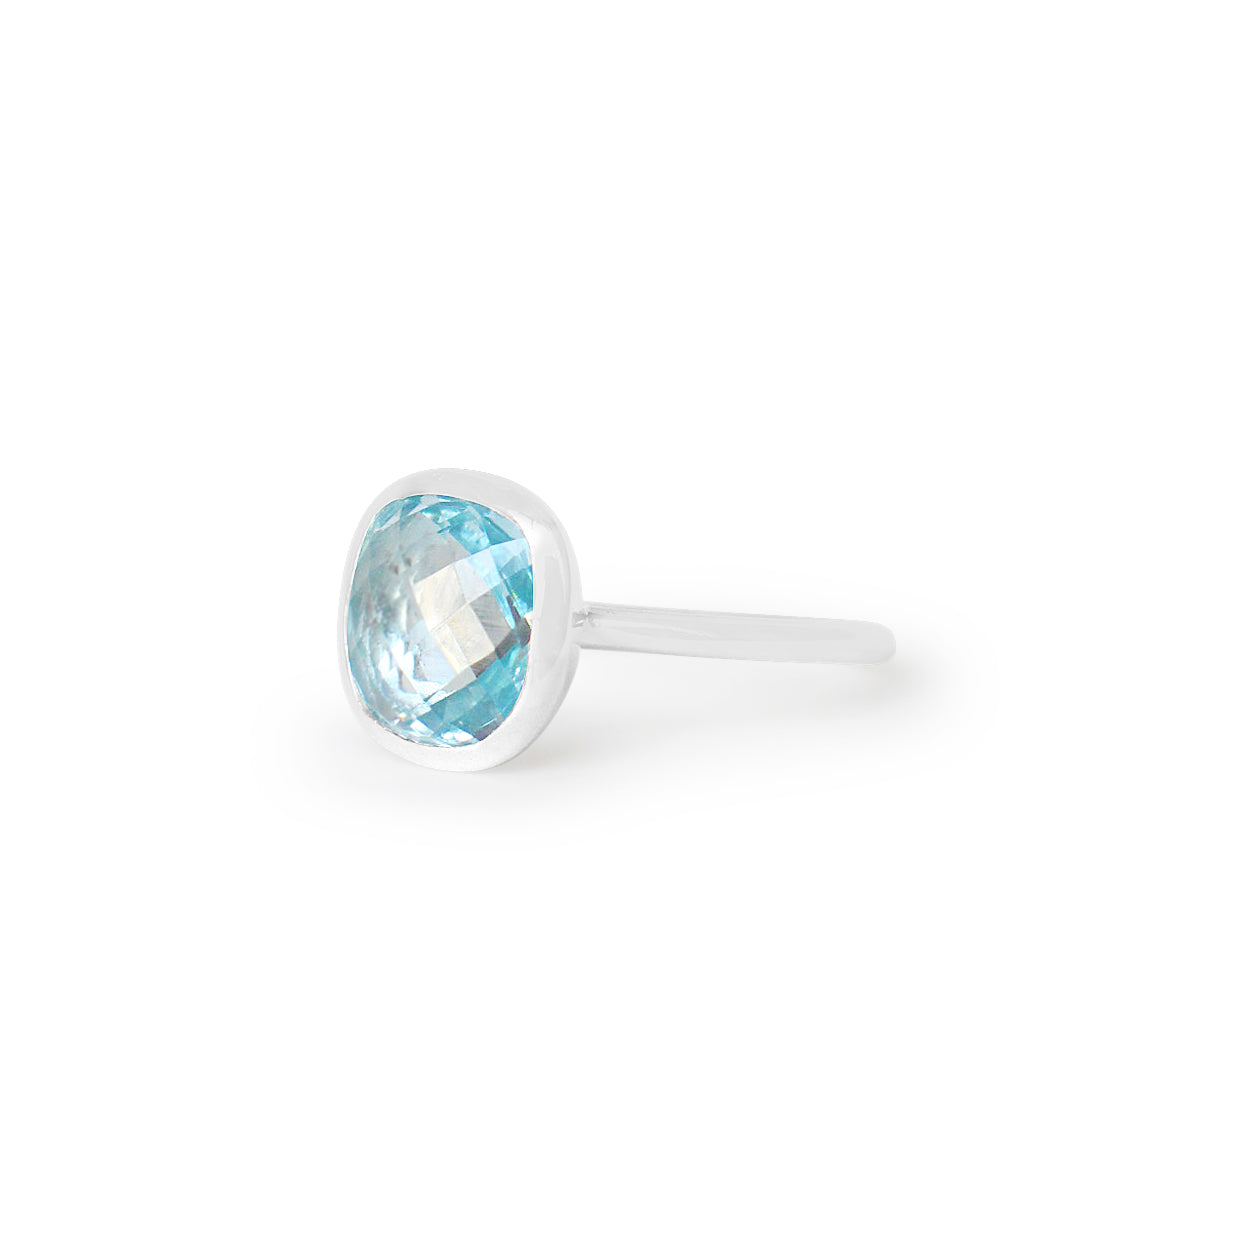 925 Silver Luxe Series Ring - Celeste (Blue Topaz) - Tessellate.Co